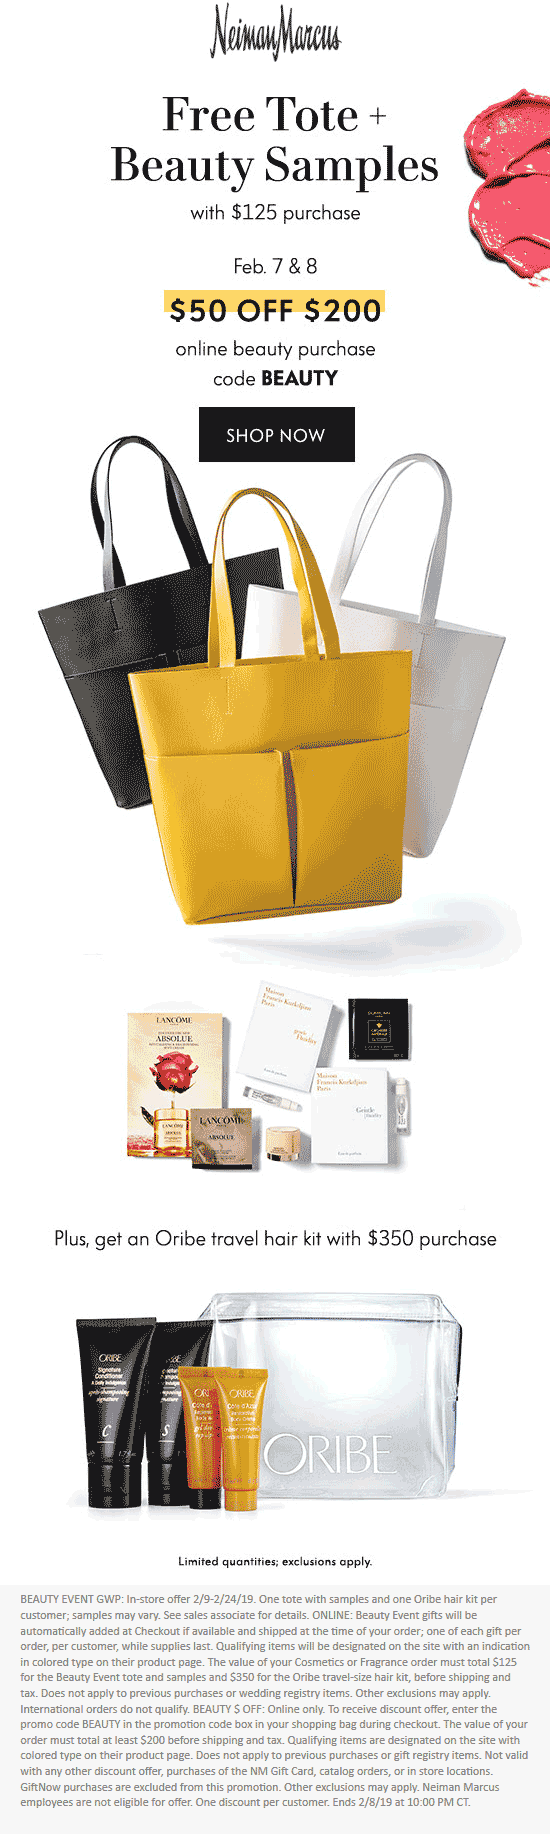 Neiman Marcus Coupon June 2020 Free tote & more at Neiman Marcus, or online via promo code BEAUTY